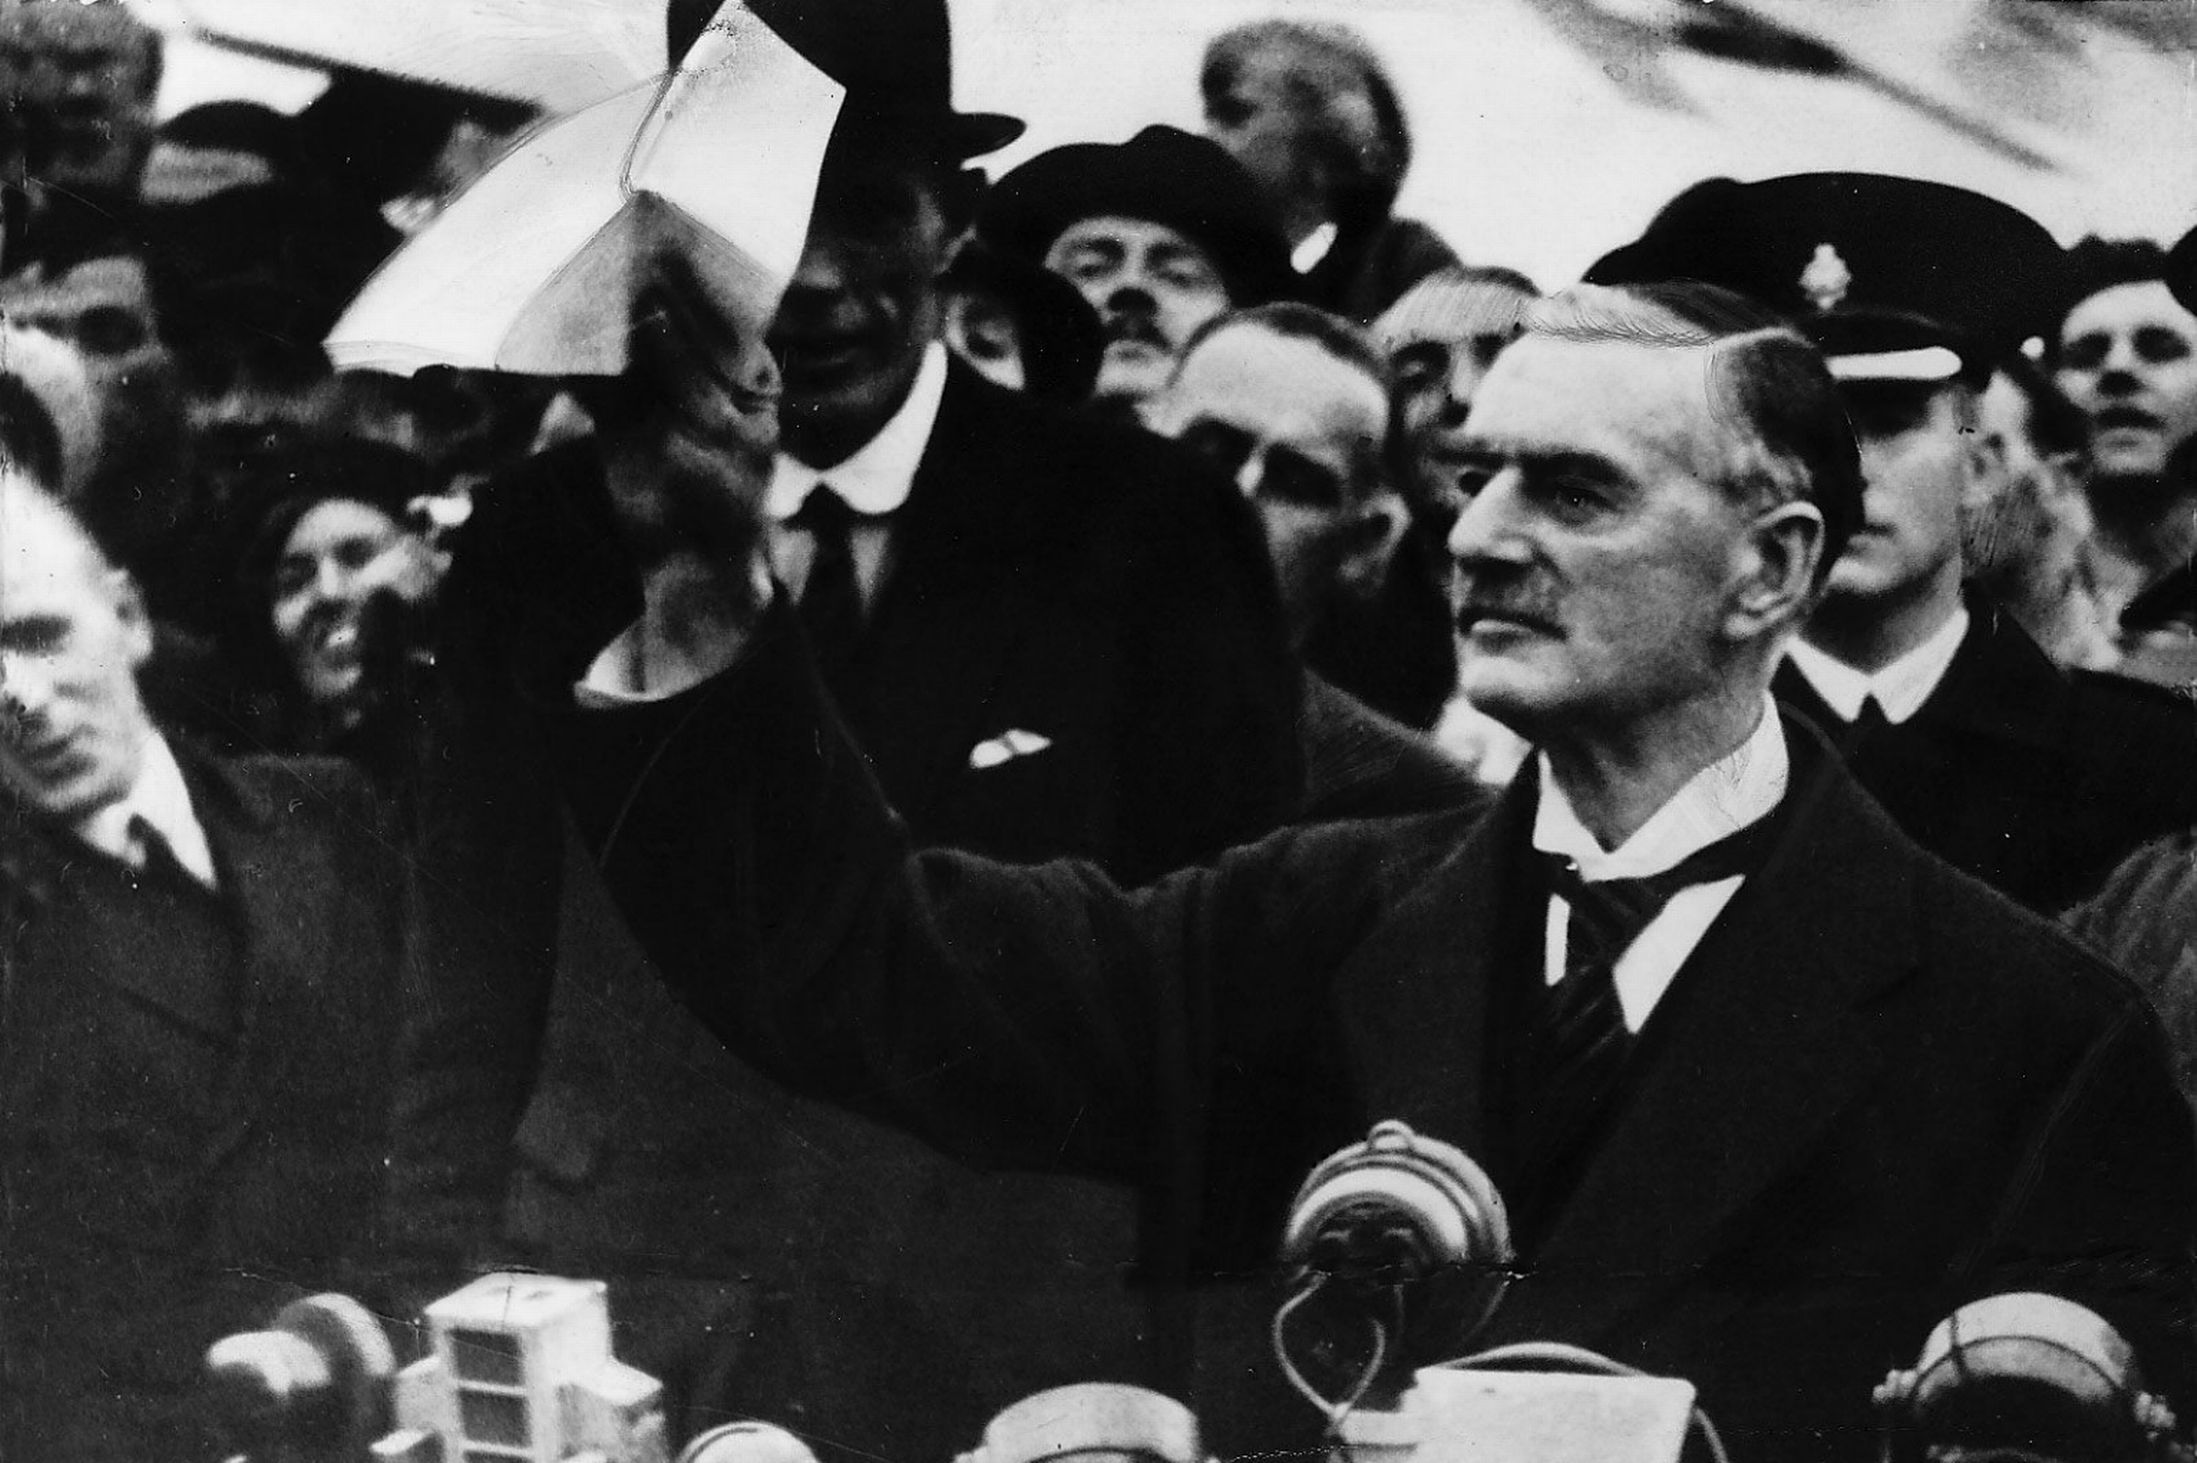 neville chamberlain s policy of appeasement between Although it is difficult to change the word's connotations, appeasement, from a position of strength, should also be seen as a means to avoid conflict see also annexation chamberlain, neville churchill, winston conflict foreign policy hitler, adolf keynes, john maynard negotiation strategy war war and peace.